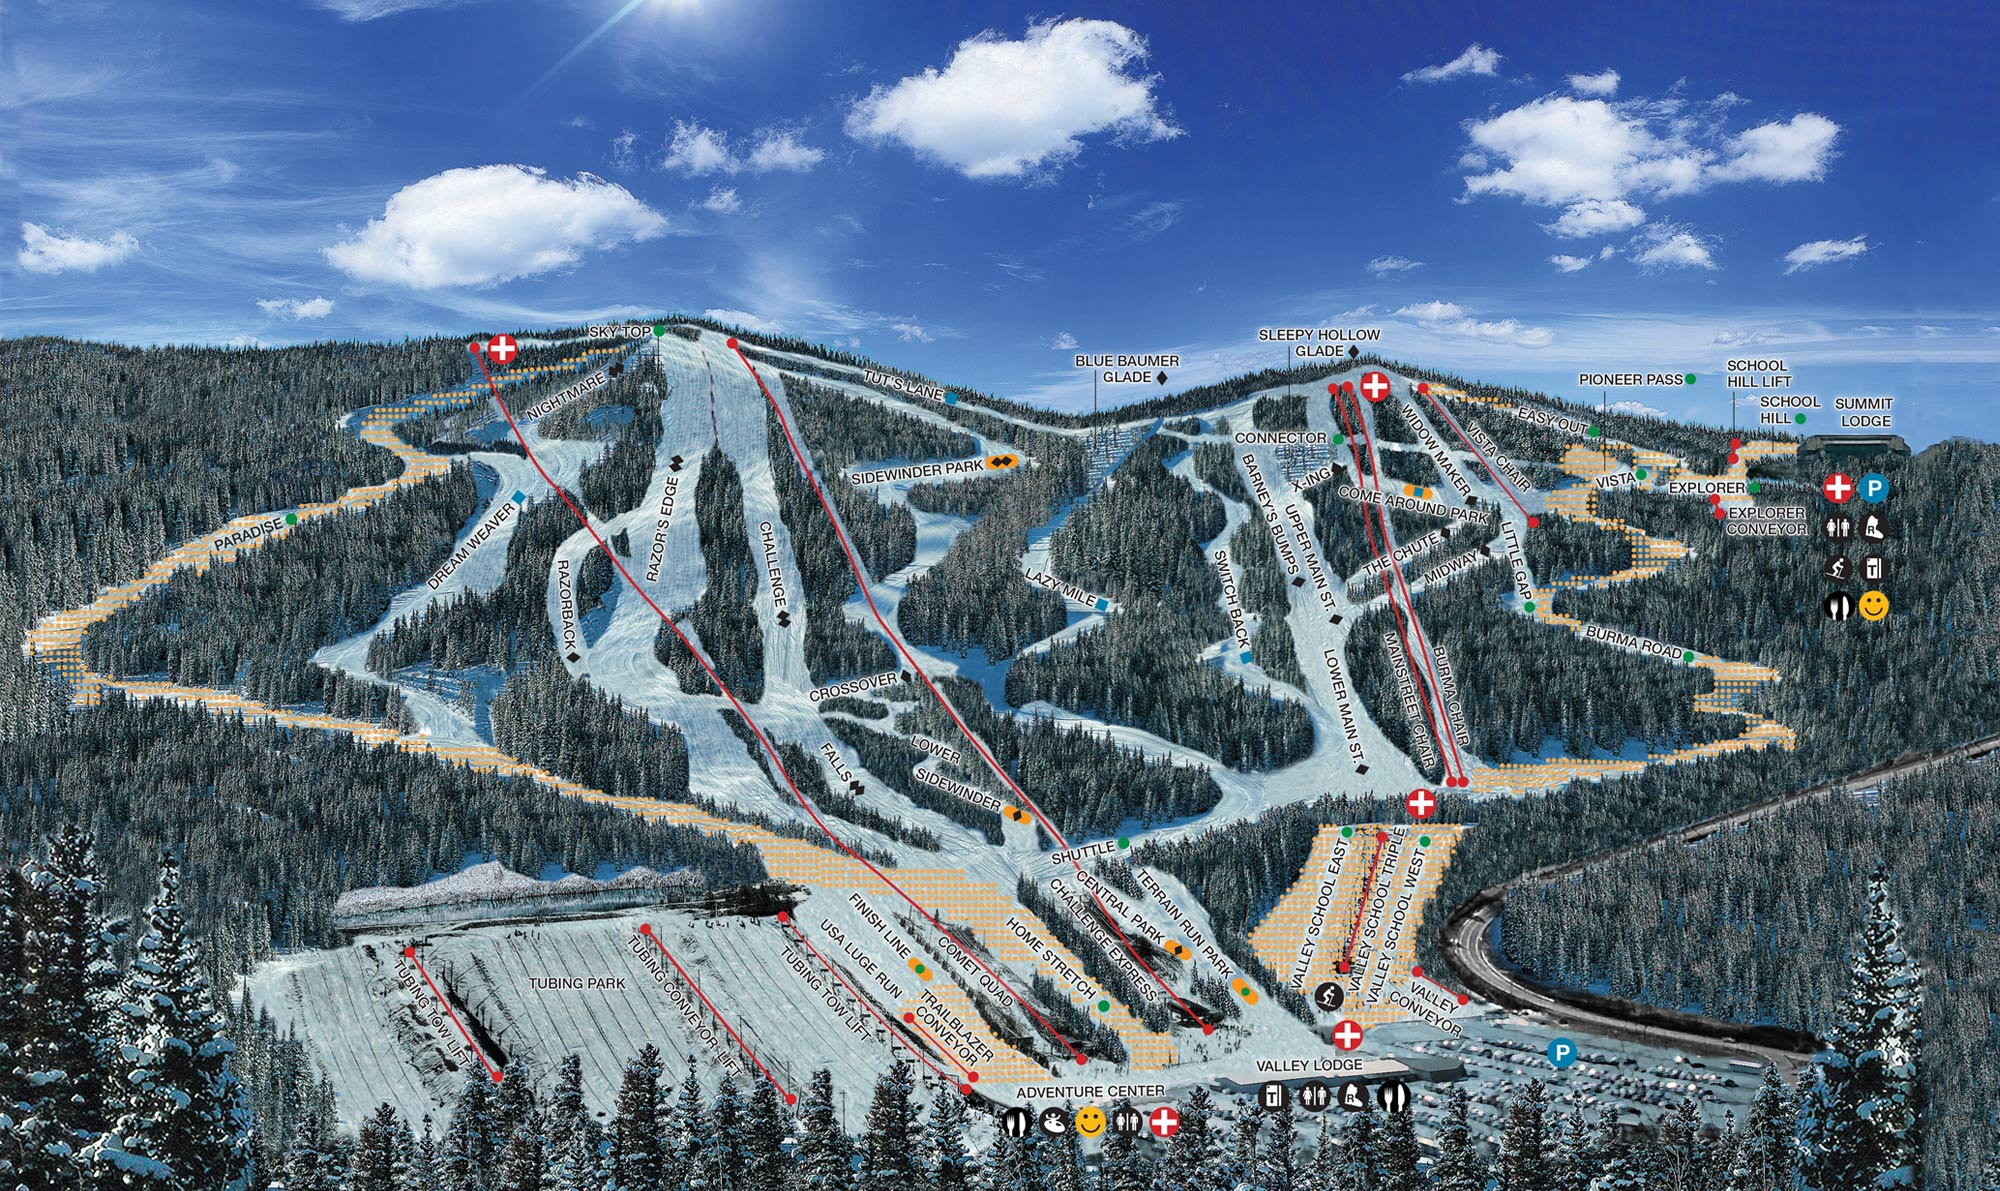 Blue Mountain Resort Piste / Trail Map